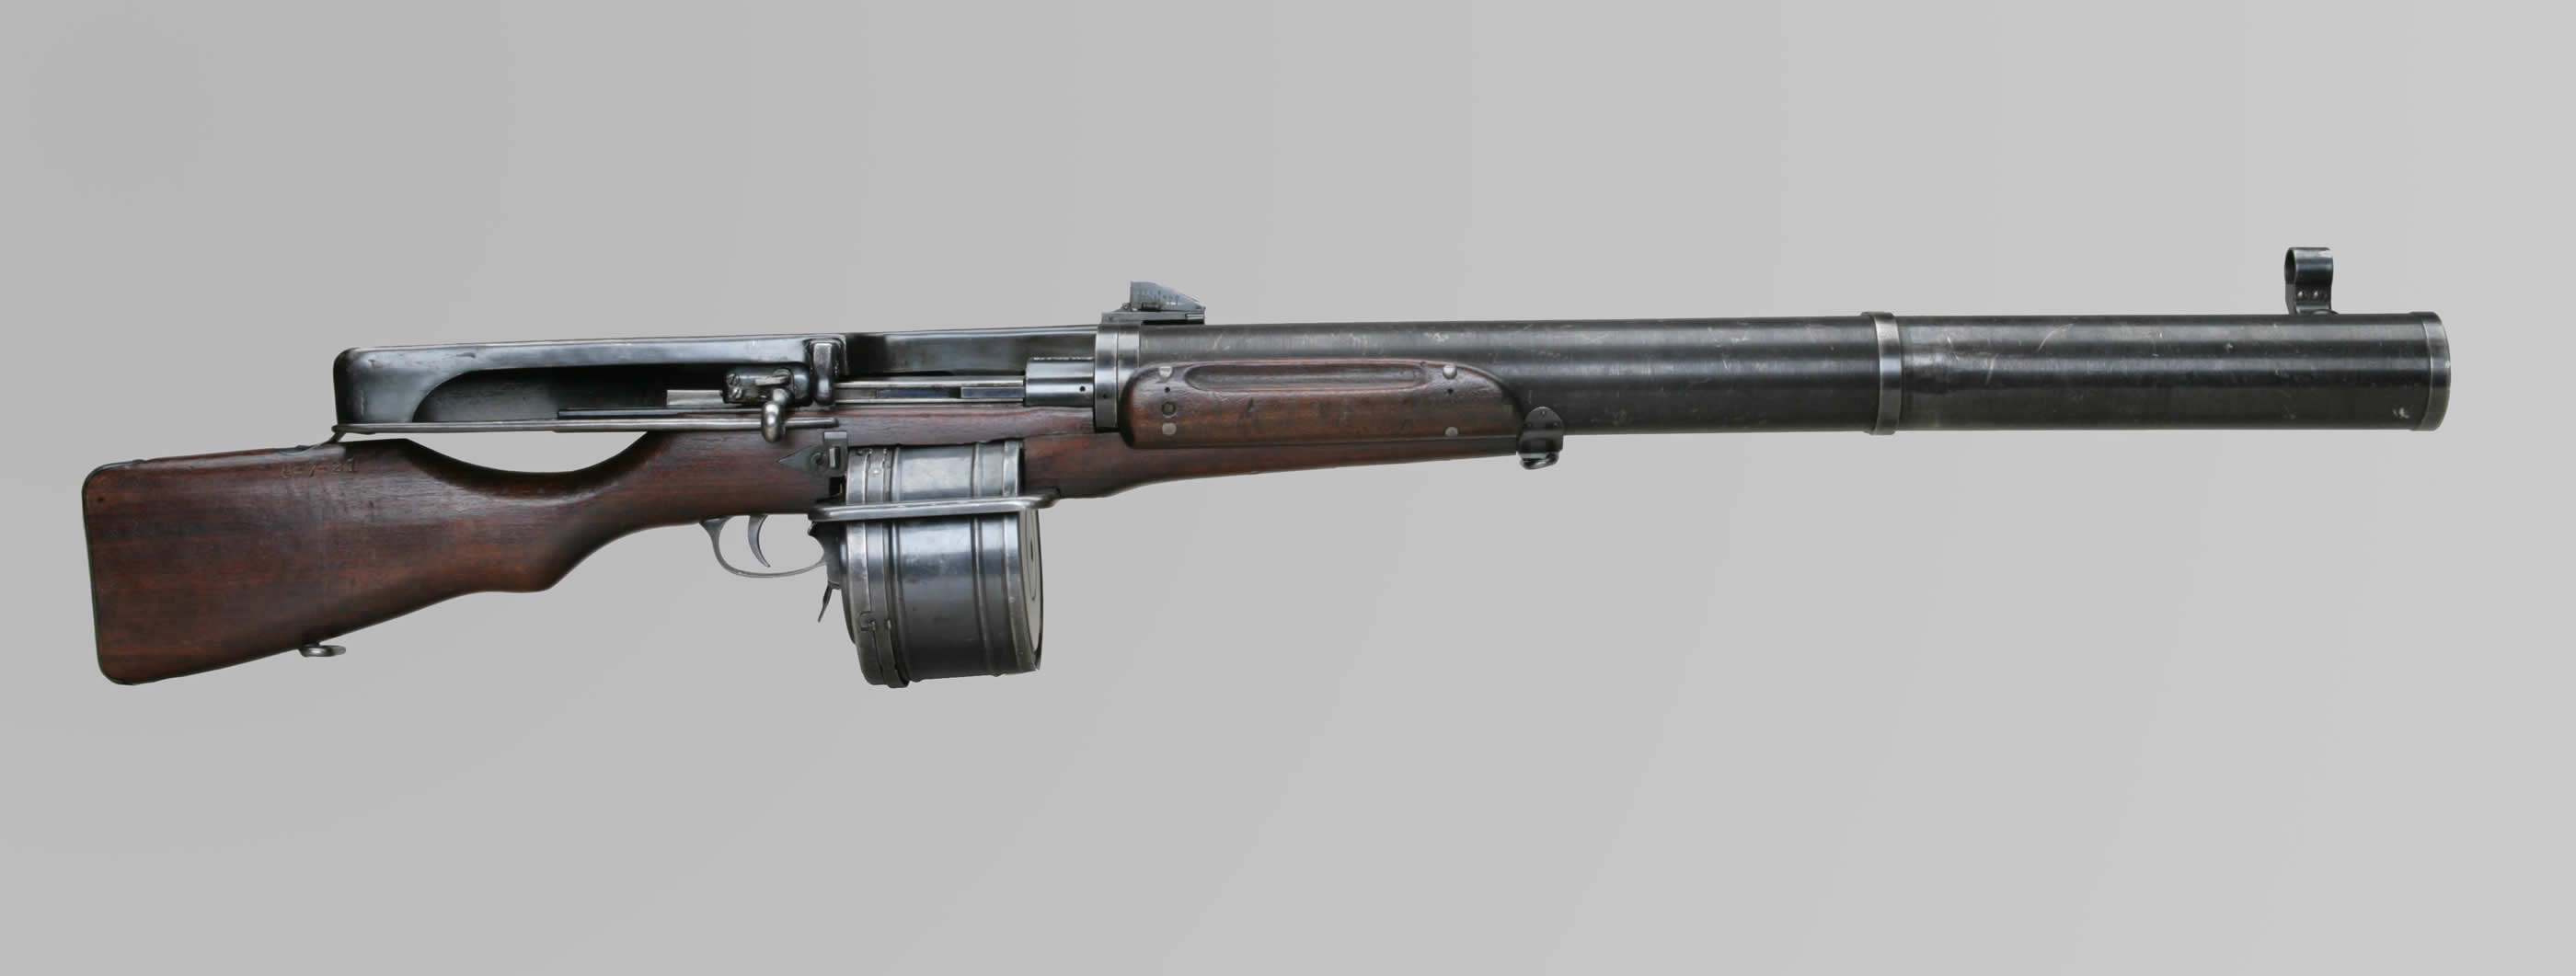 Huot-Ross Automatic Rifle